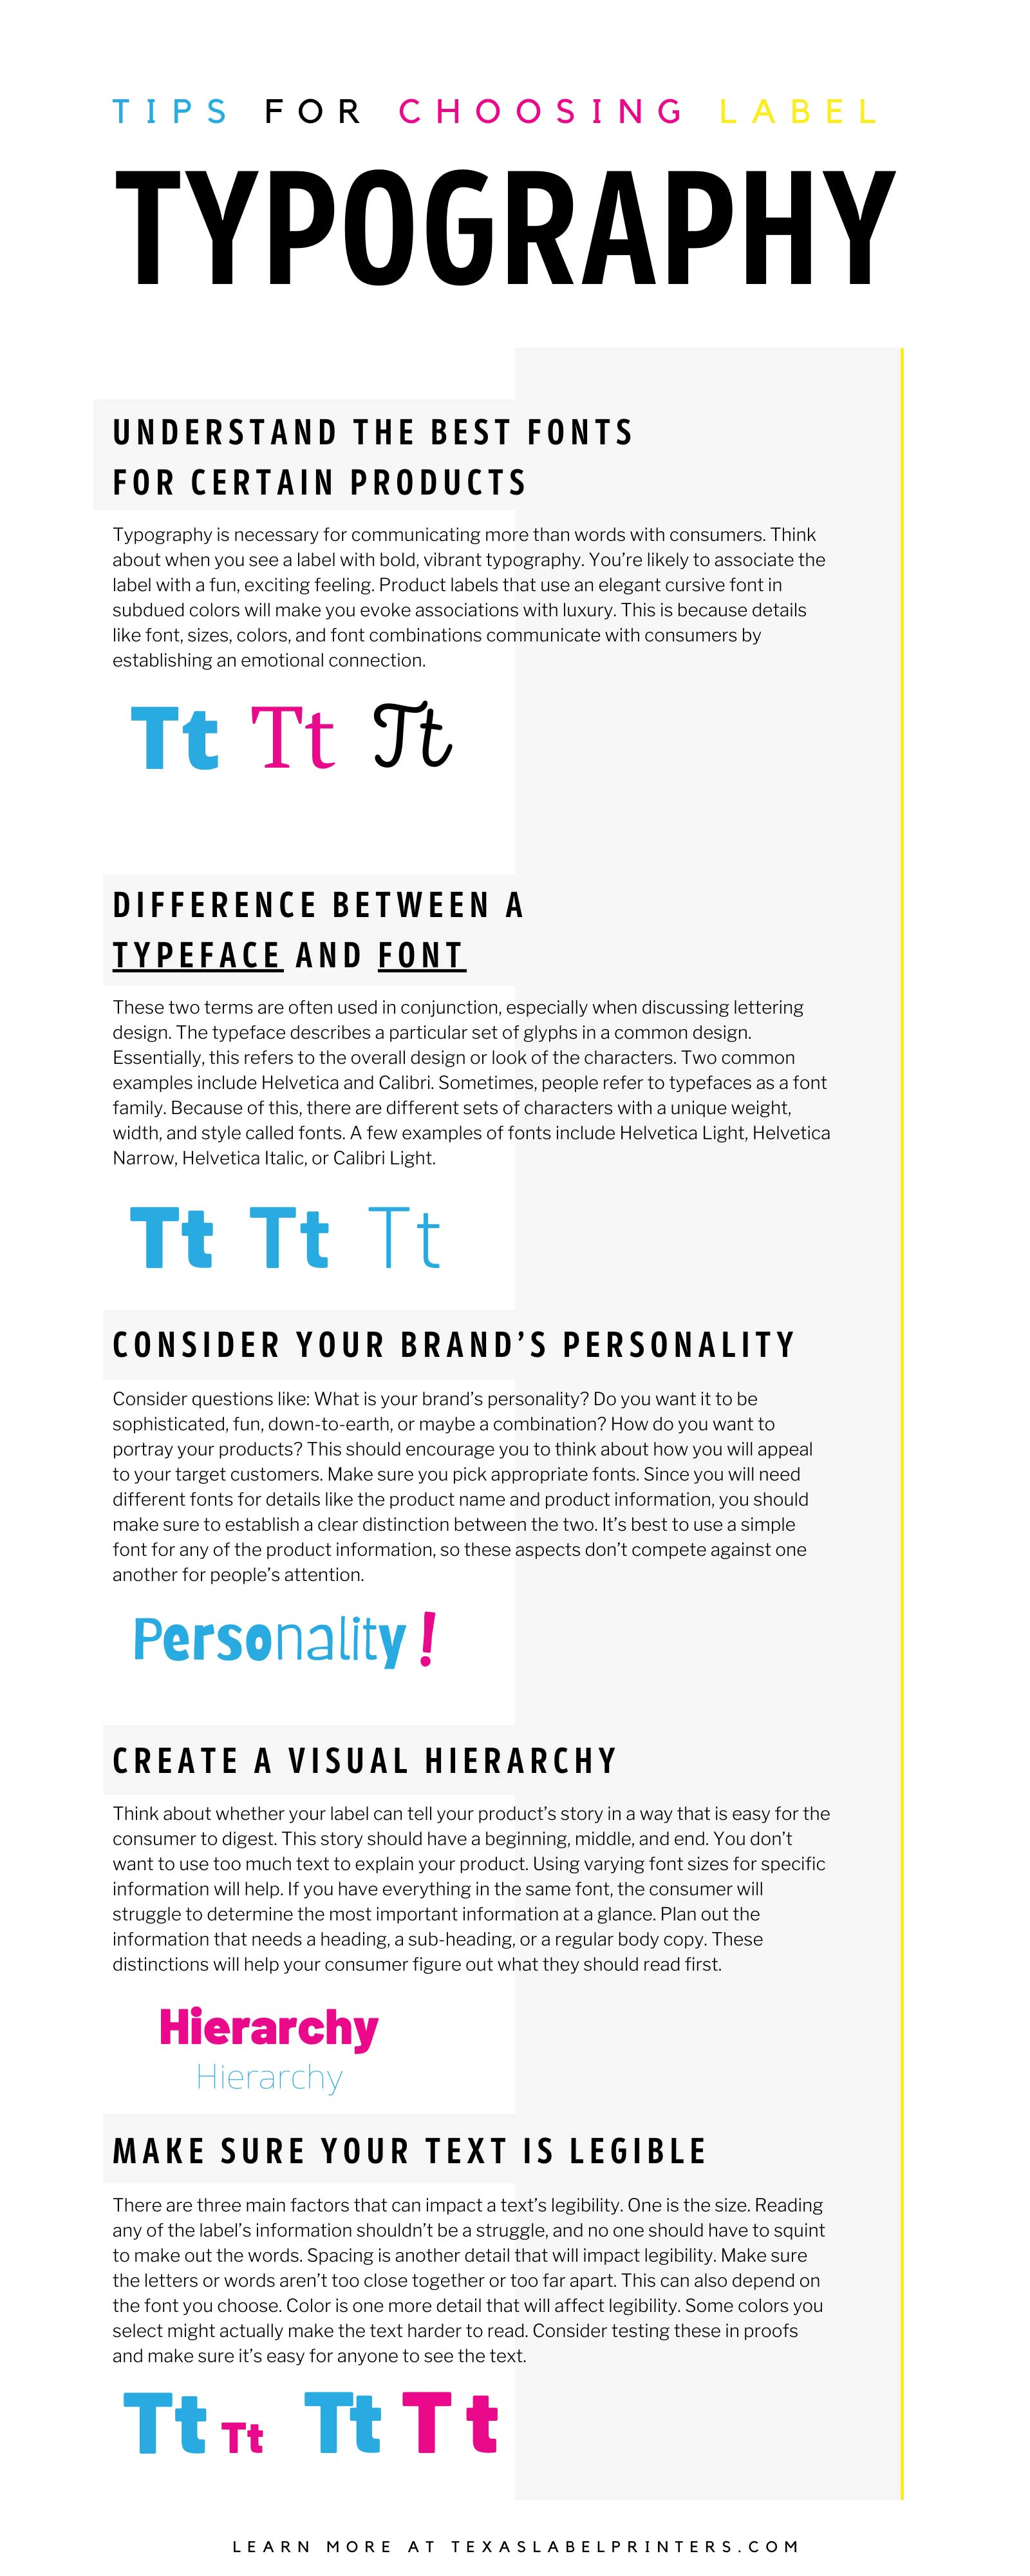 Tips for Choosing Label Typography Infographic